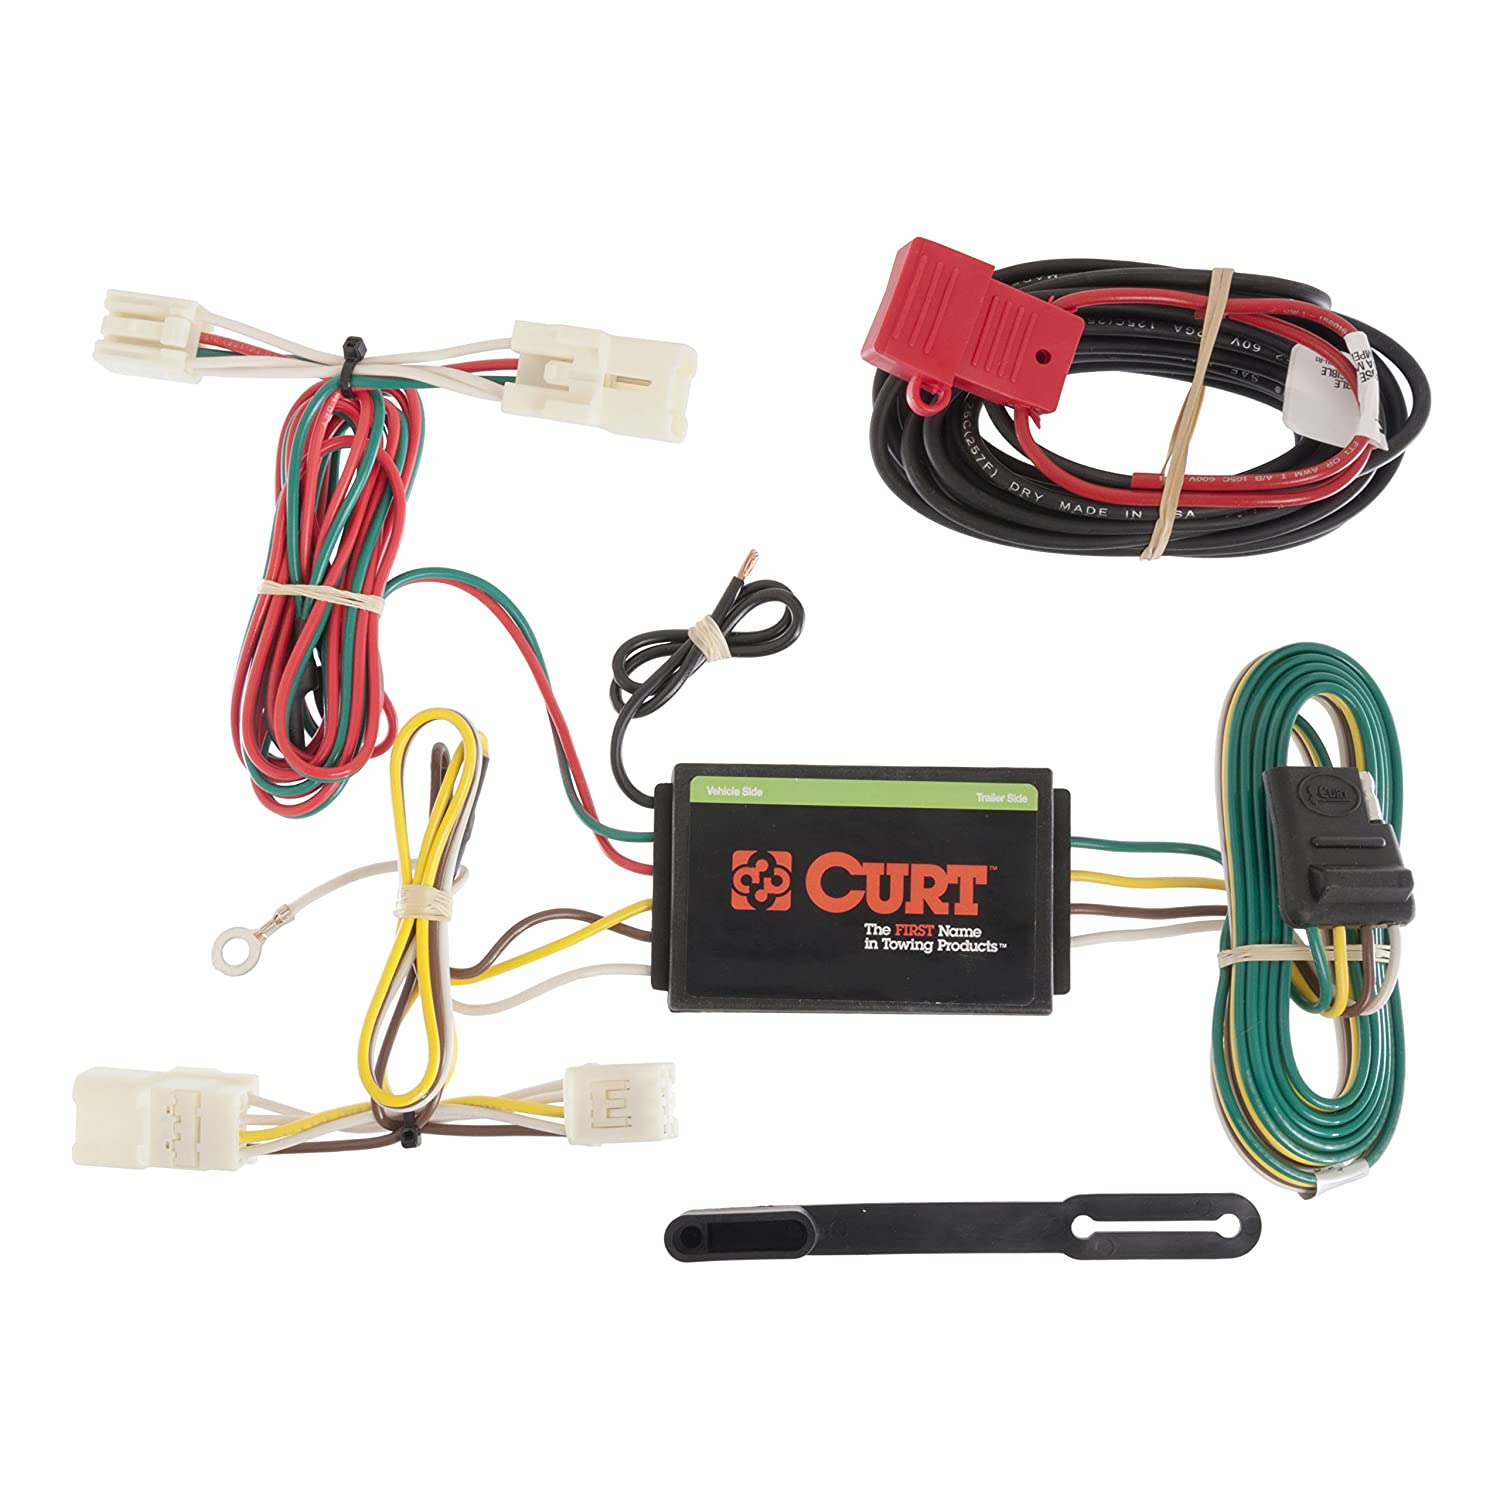 Enjoyable Toyota Trailer Wiring Kit Wiring Library Wiring Digital Resources Bemuashebarightsorg